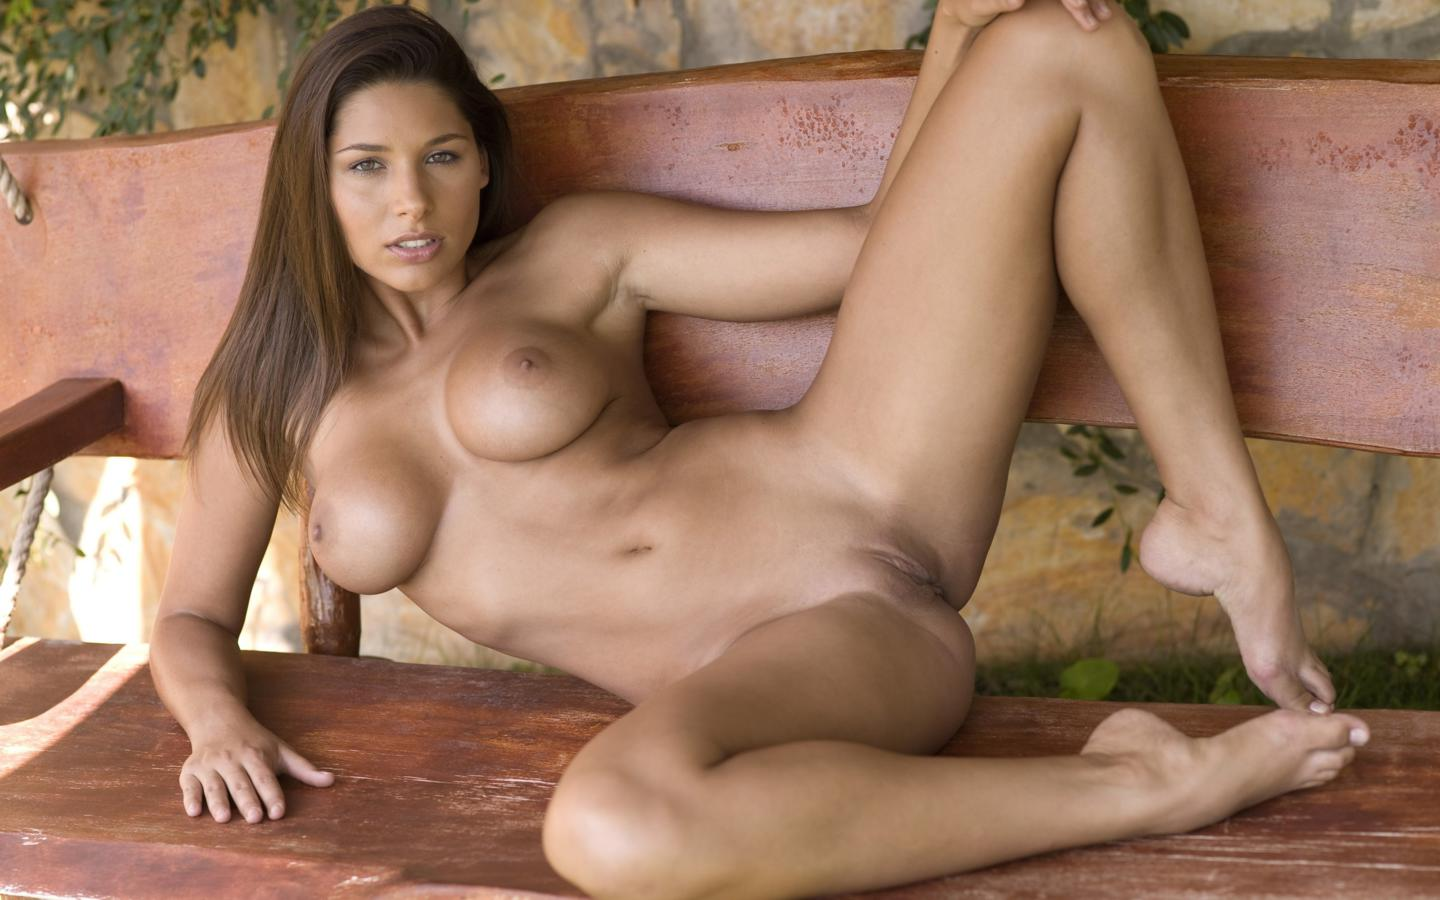 nude, pussy, brunette, spreading legs, bench, shaved, naked, hot, feet ...